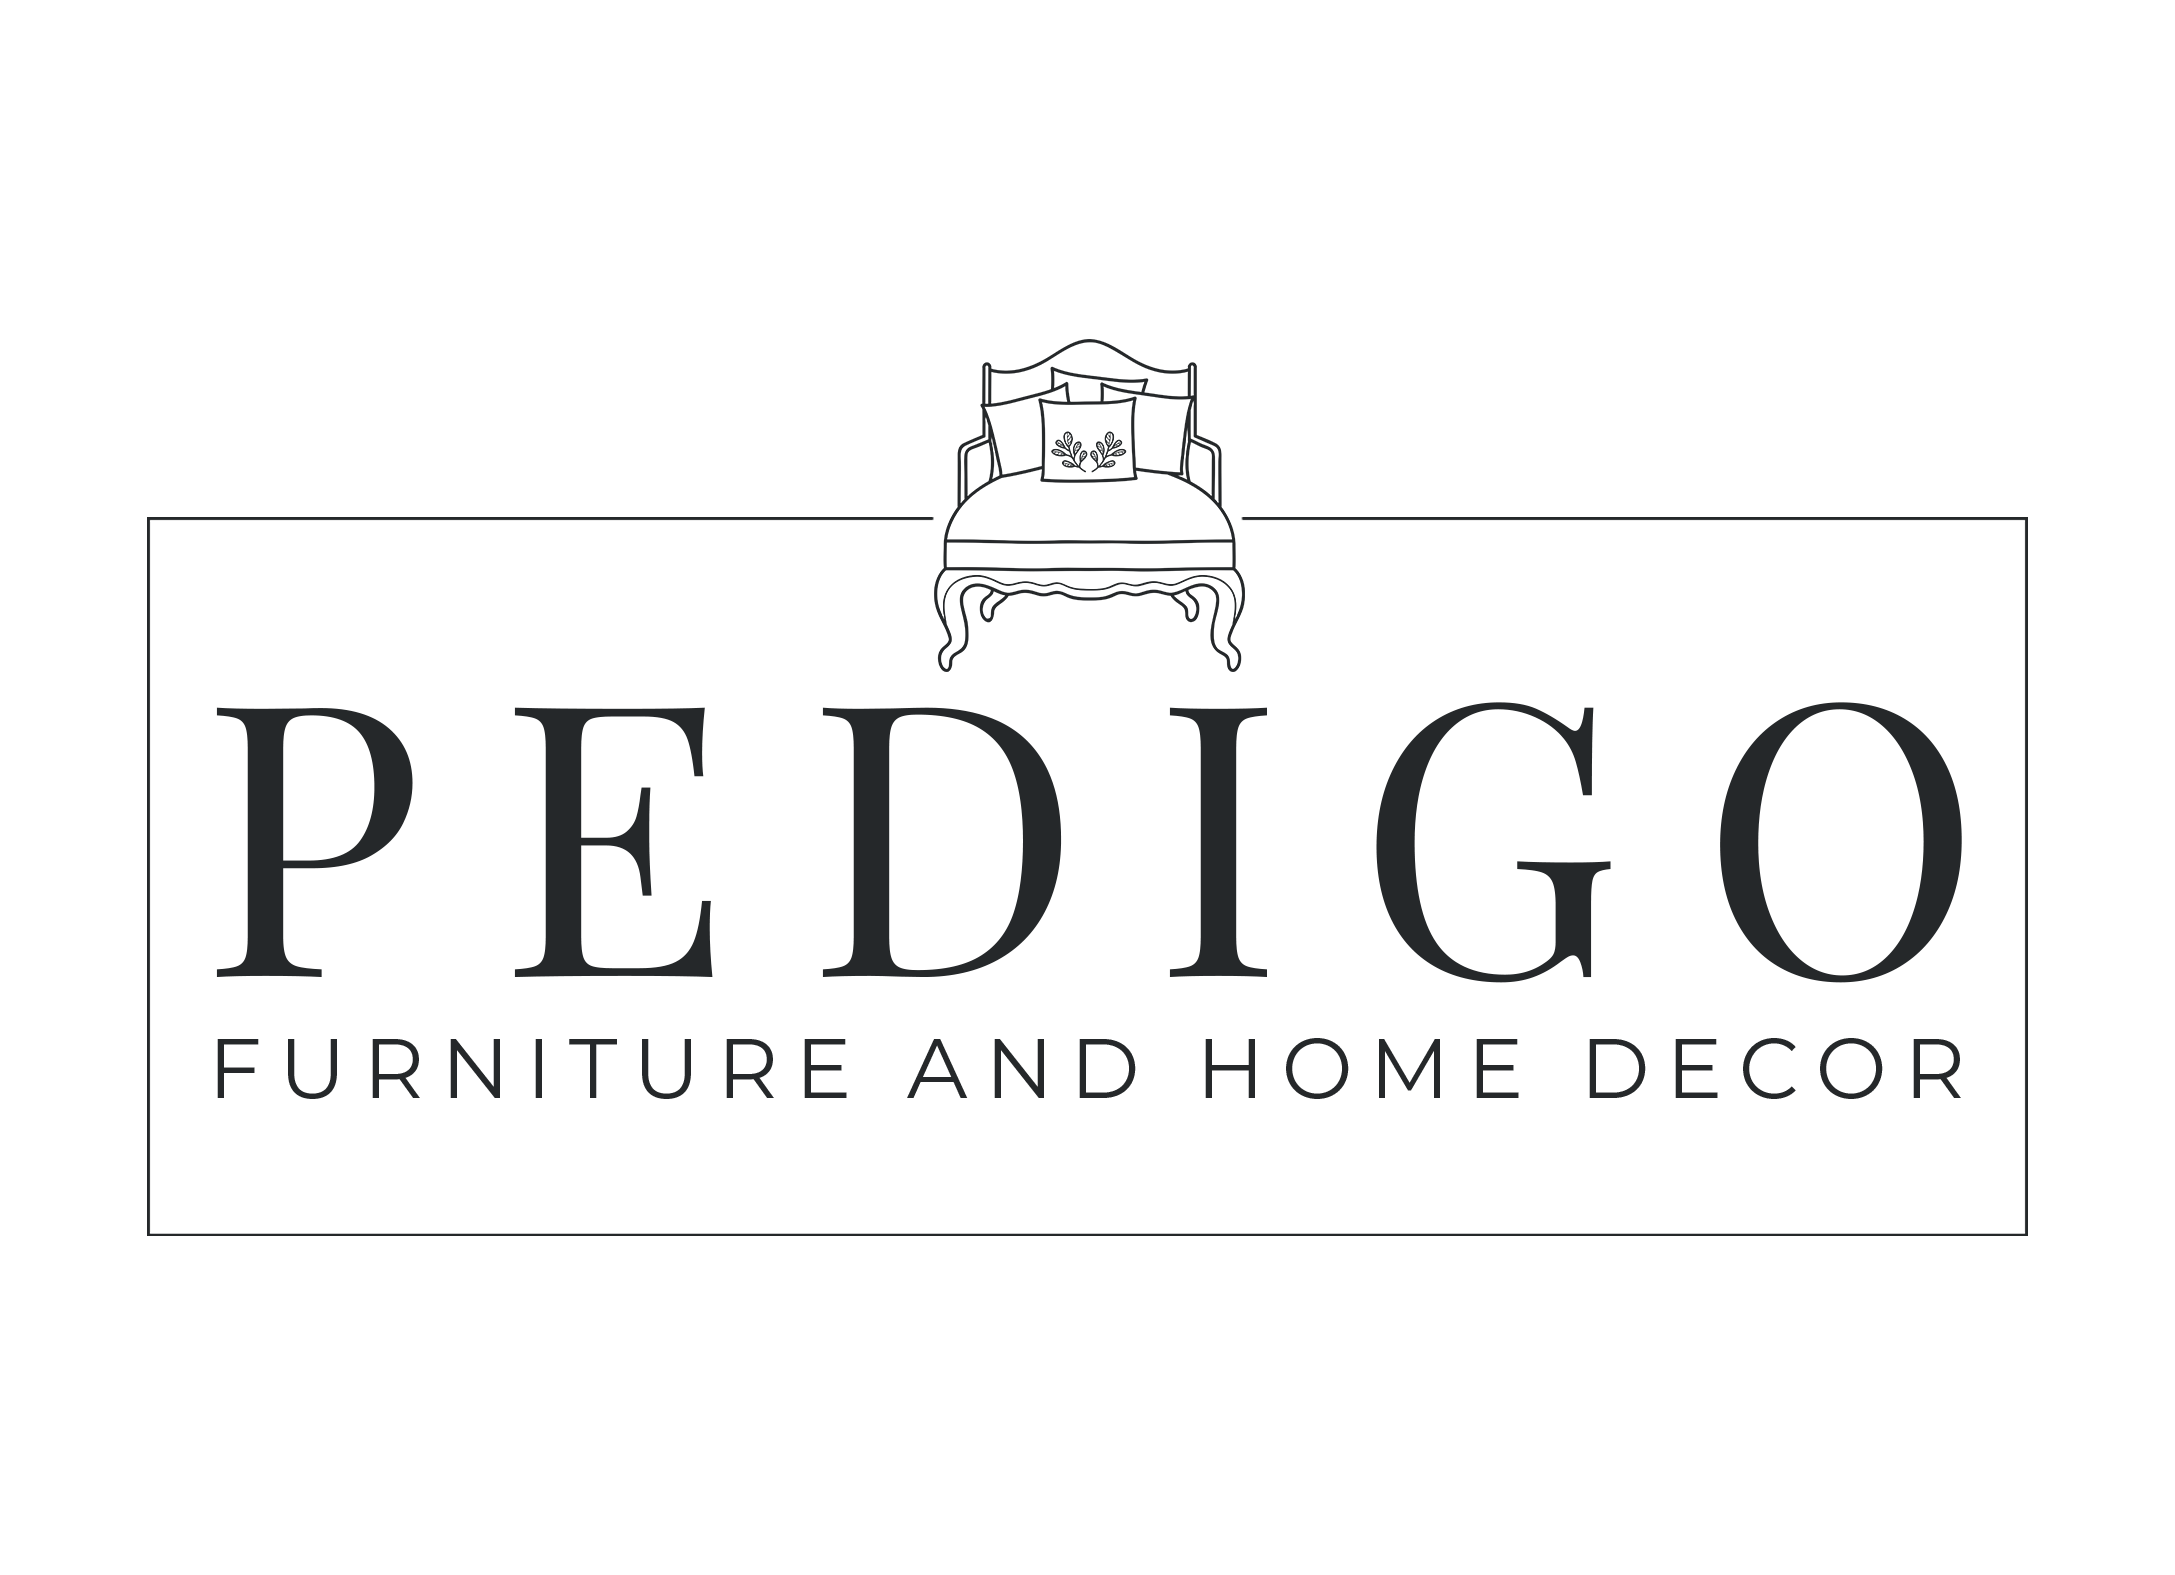 Pedigo Furniture and Home Decor